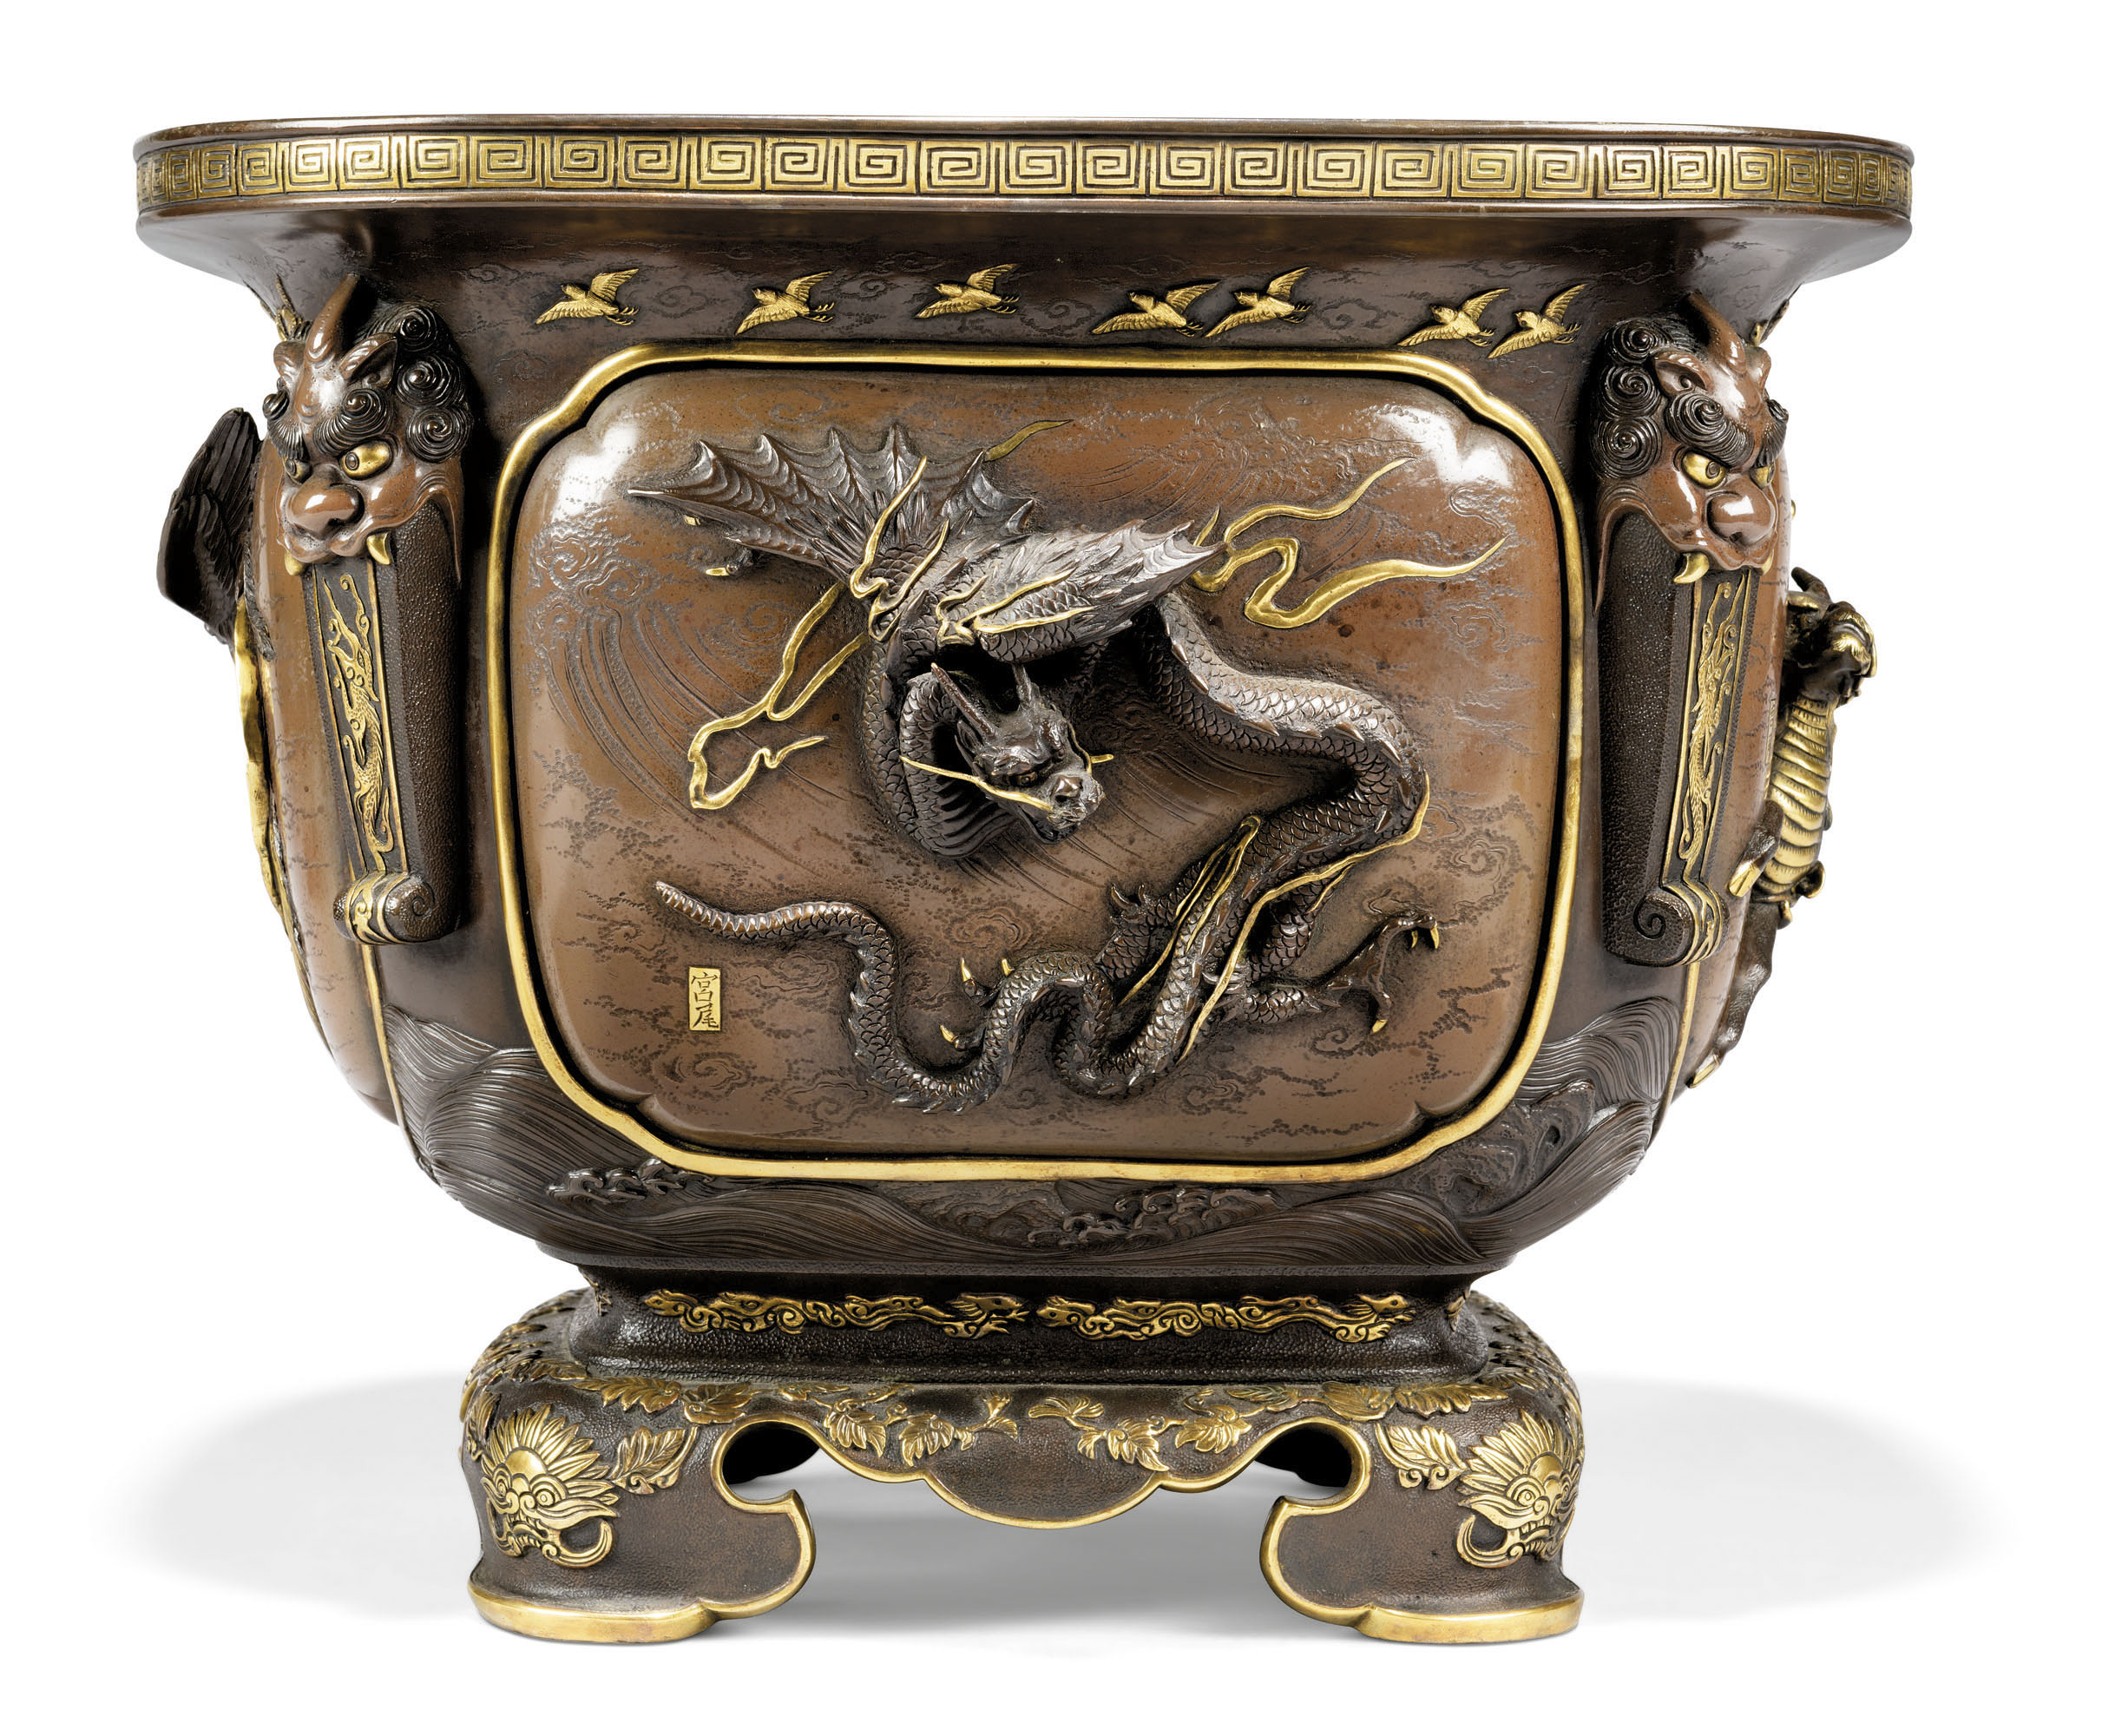 A JAPANESE GILT AND PATINATED-BRONZE JARDINIERE